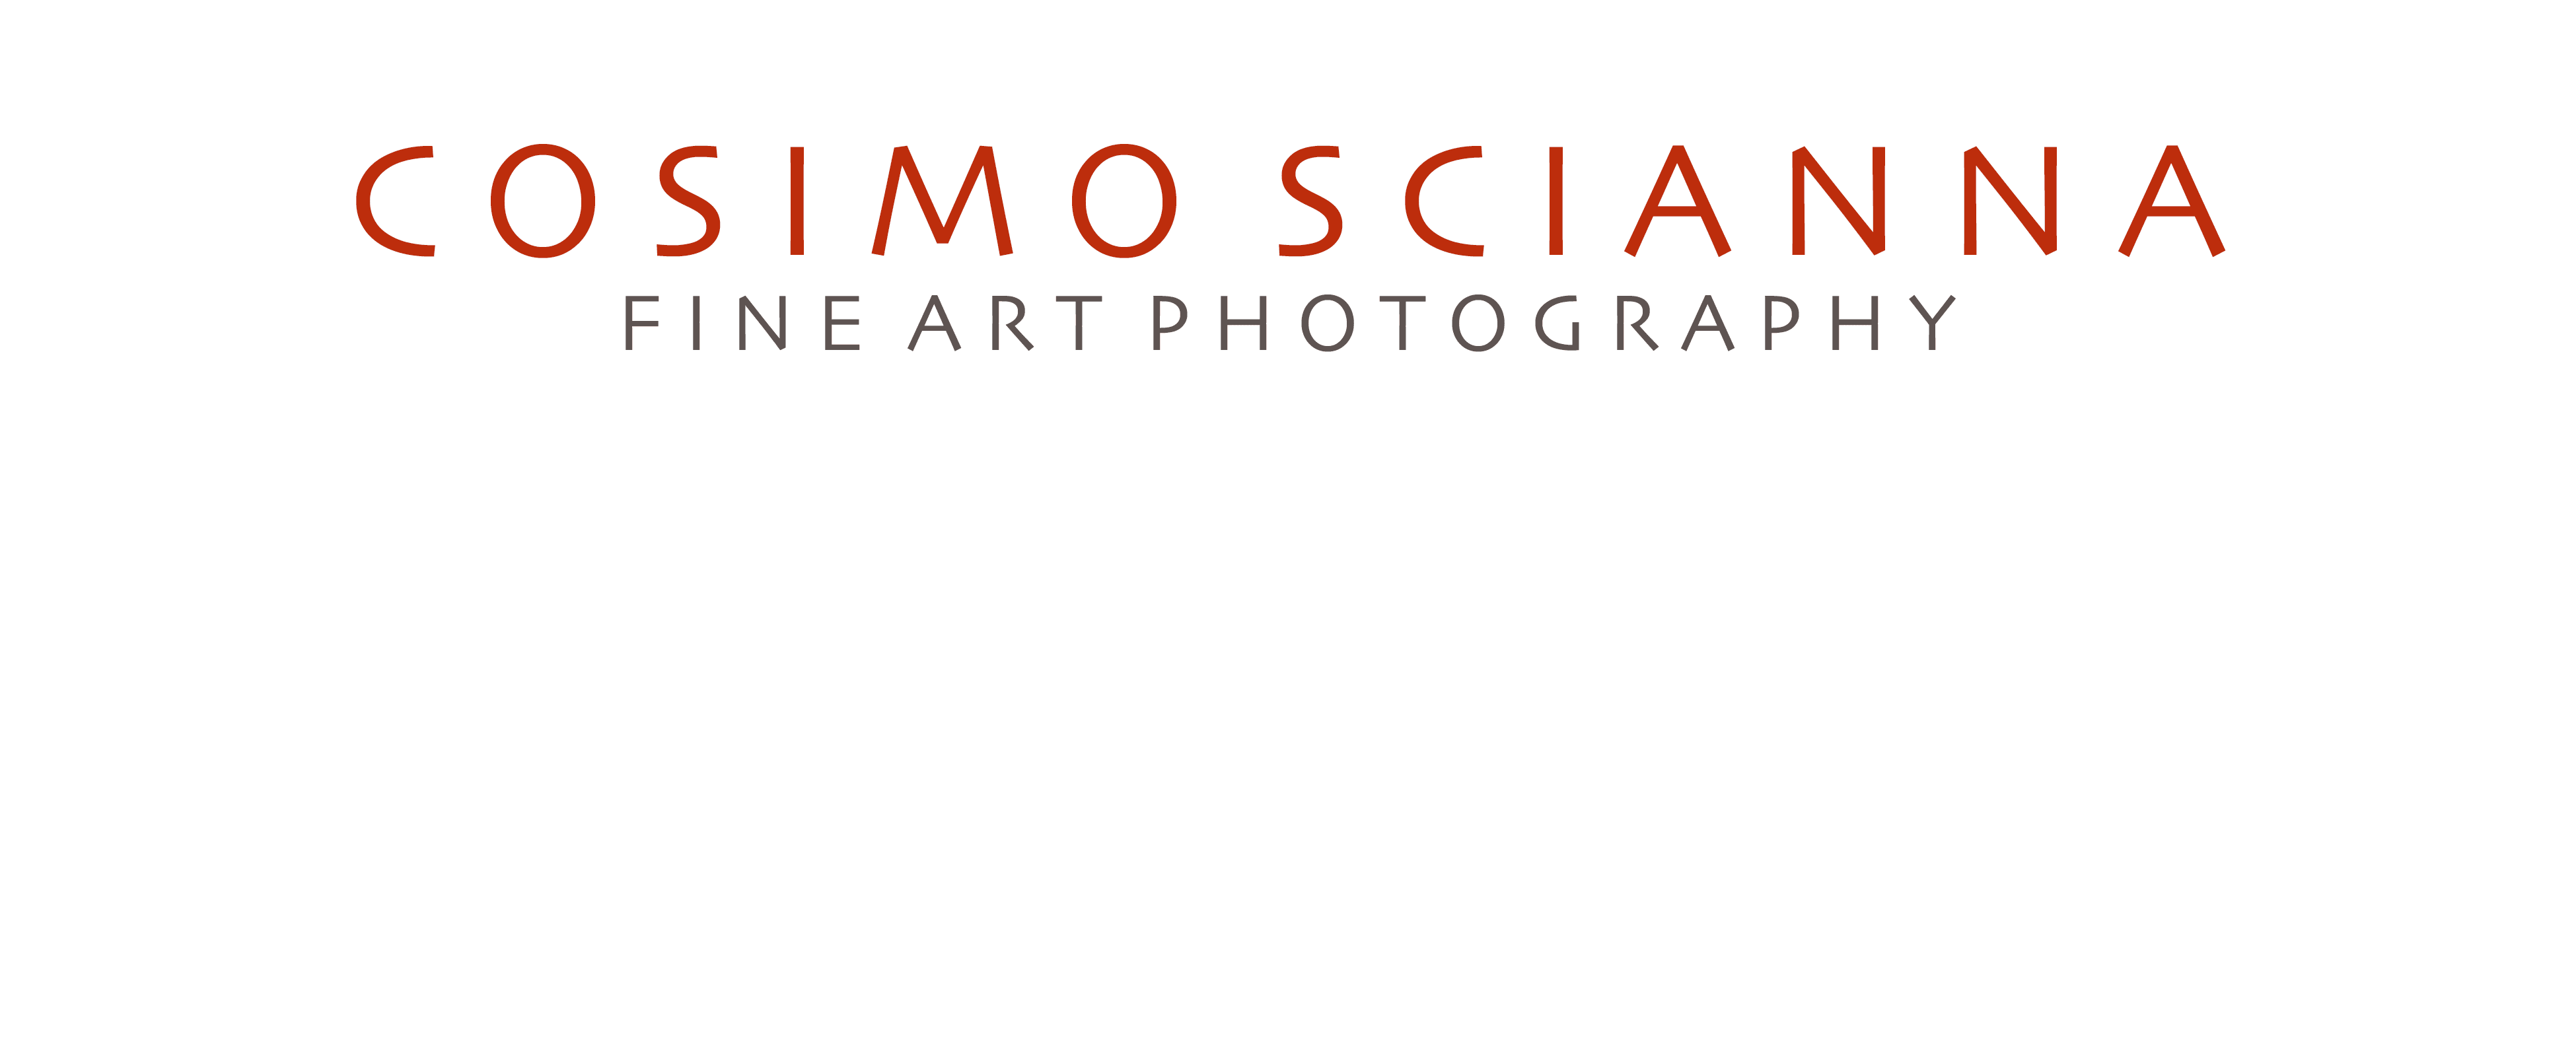 cosimo scianna fine art photographer